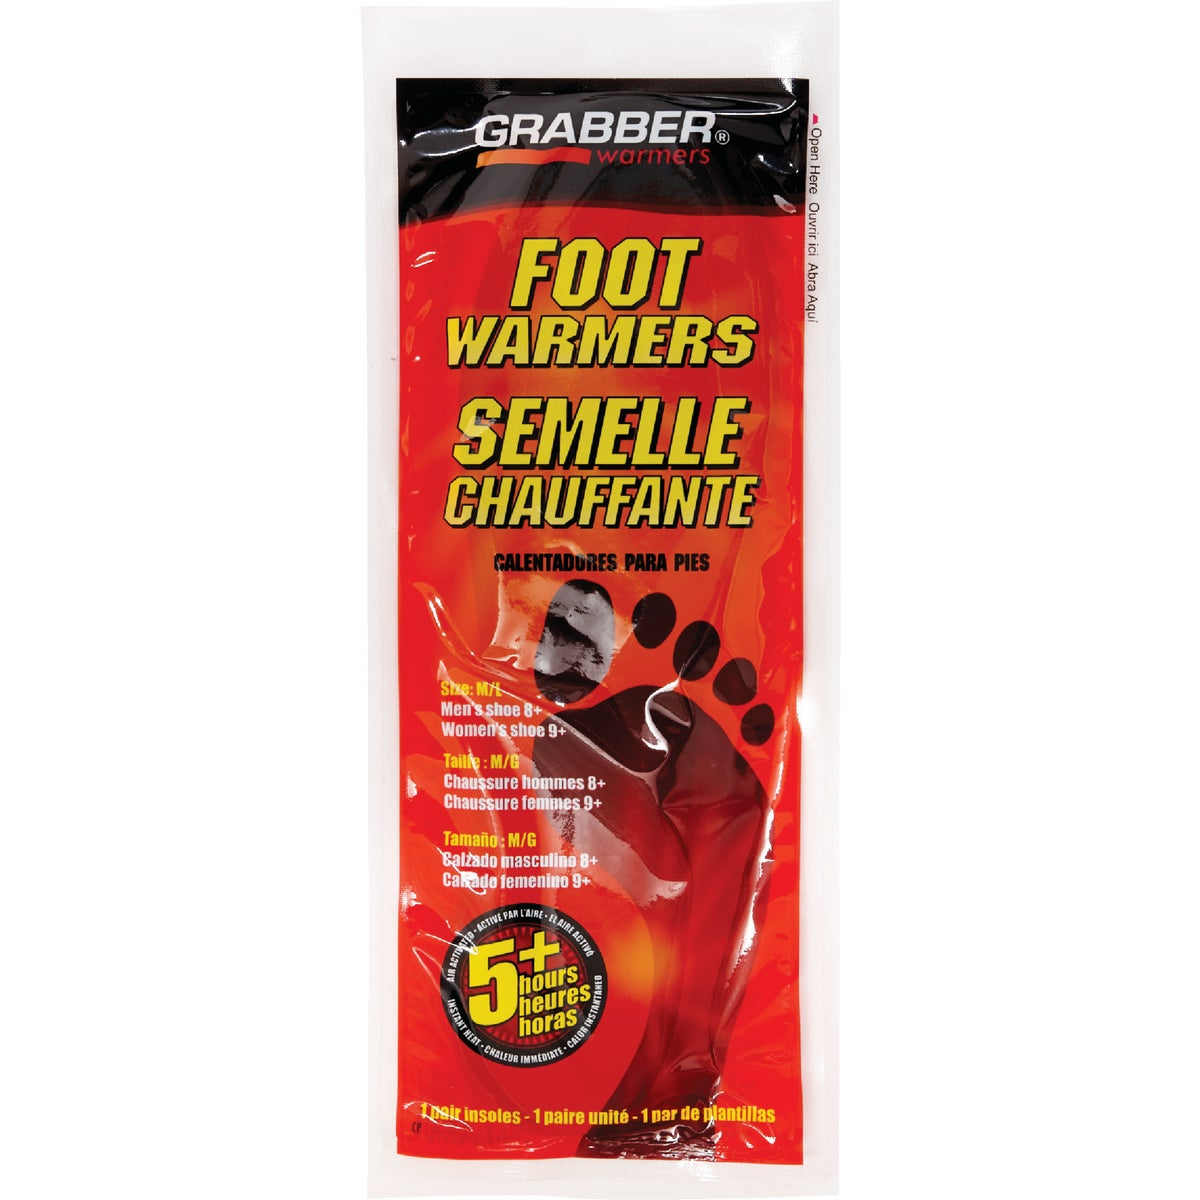 M/L FOOT INSOLES WARMER - CSFWML12 by Grabber Performance